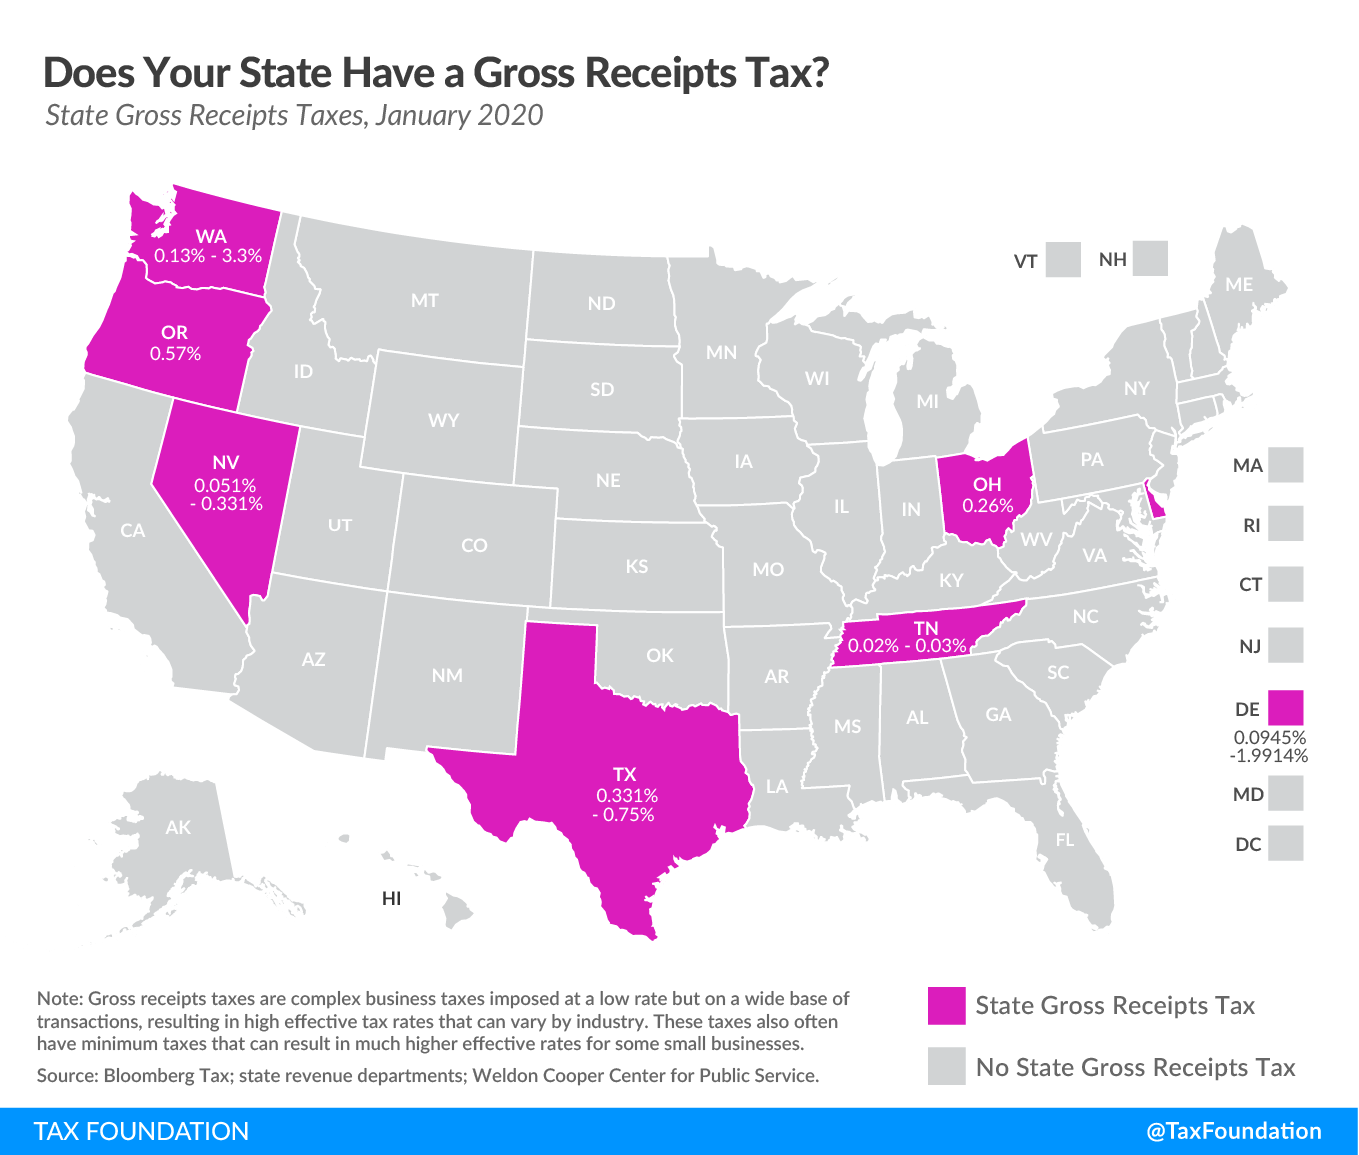 Which states have a gross receipts tax? State gross receipts tax, state gross receipts tax, Washington state gross receipts tax, Washington gross receipts tax, Oregon gross receipts tax, Nevada gross receipts tax, Texas gross receipts tax, Tennessee gross receipts tax, Ohio gross receipts tax, Delaware gross receipts tax, does your state have a gross receipts tax?